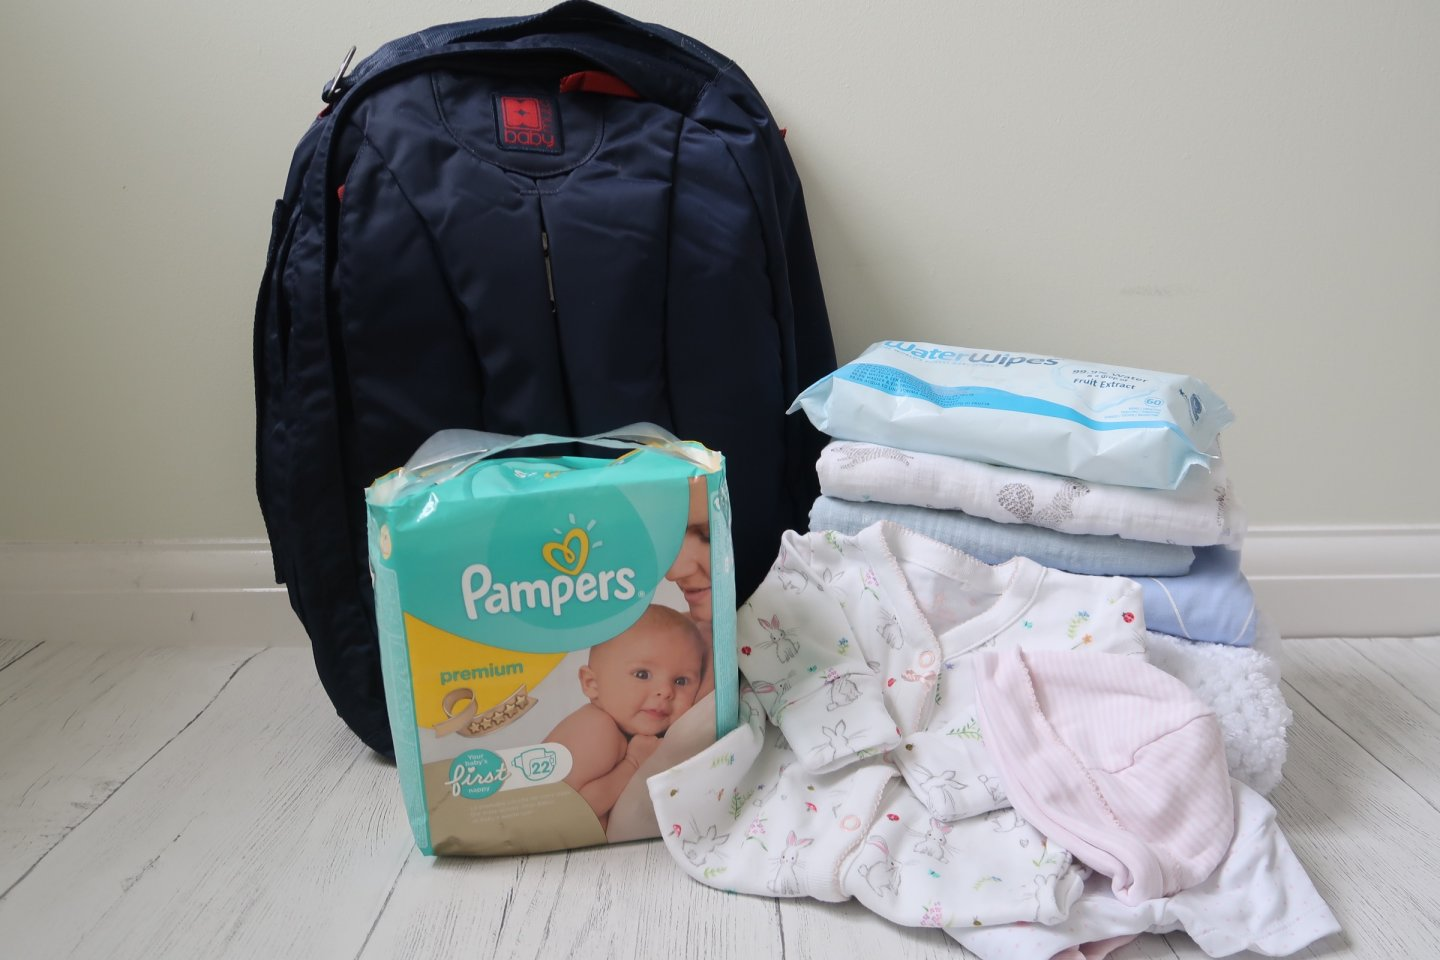 What to pack in baby's hospital bag